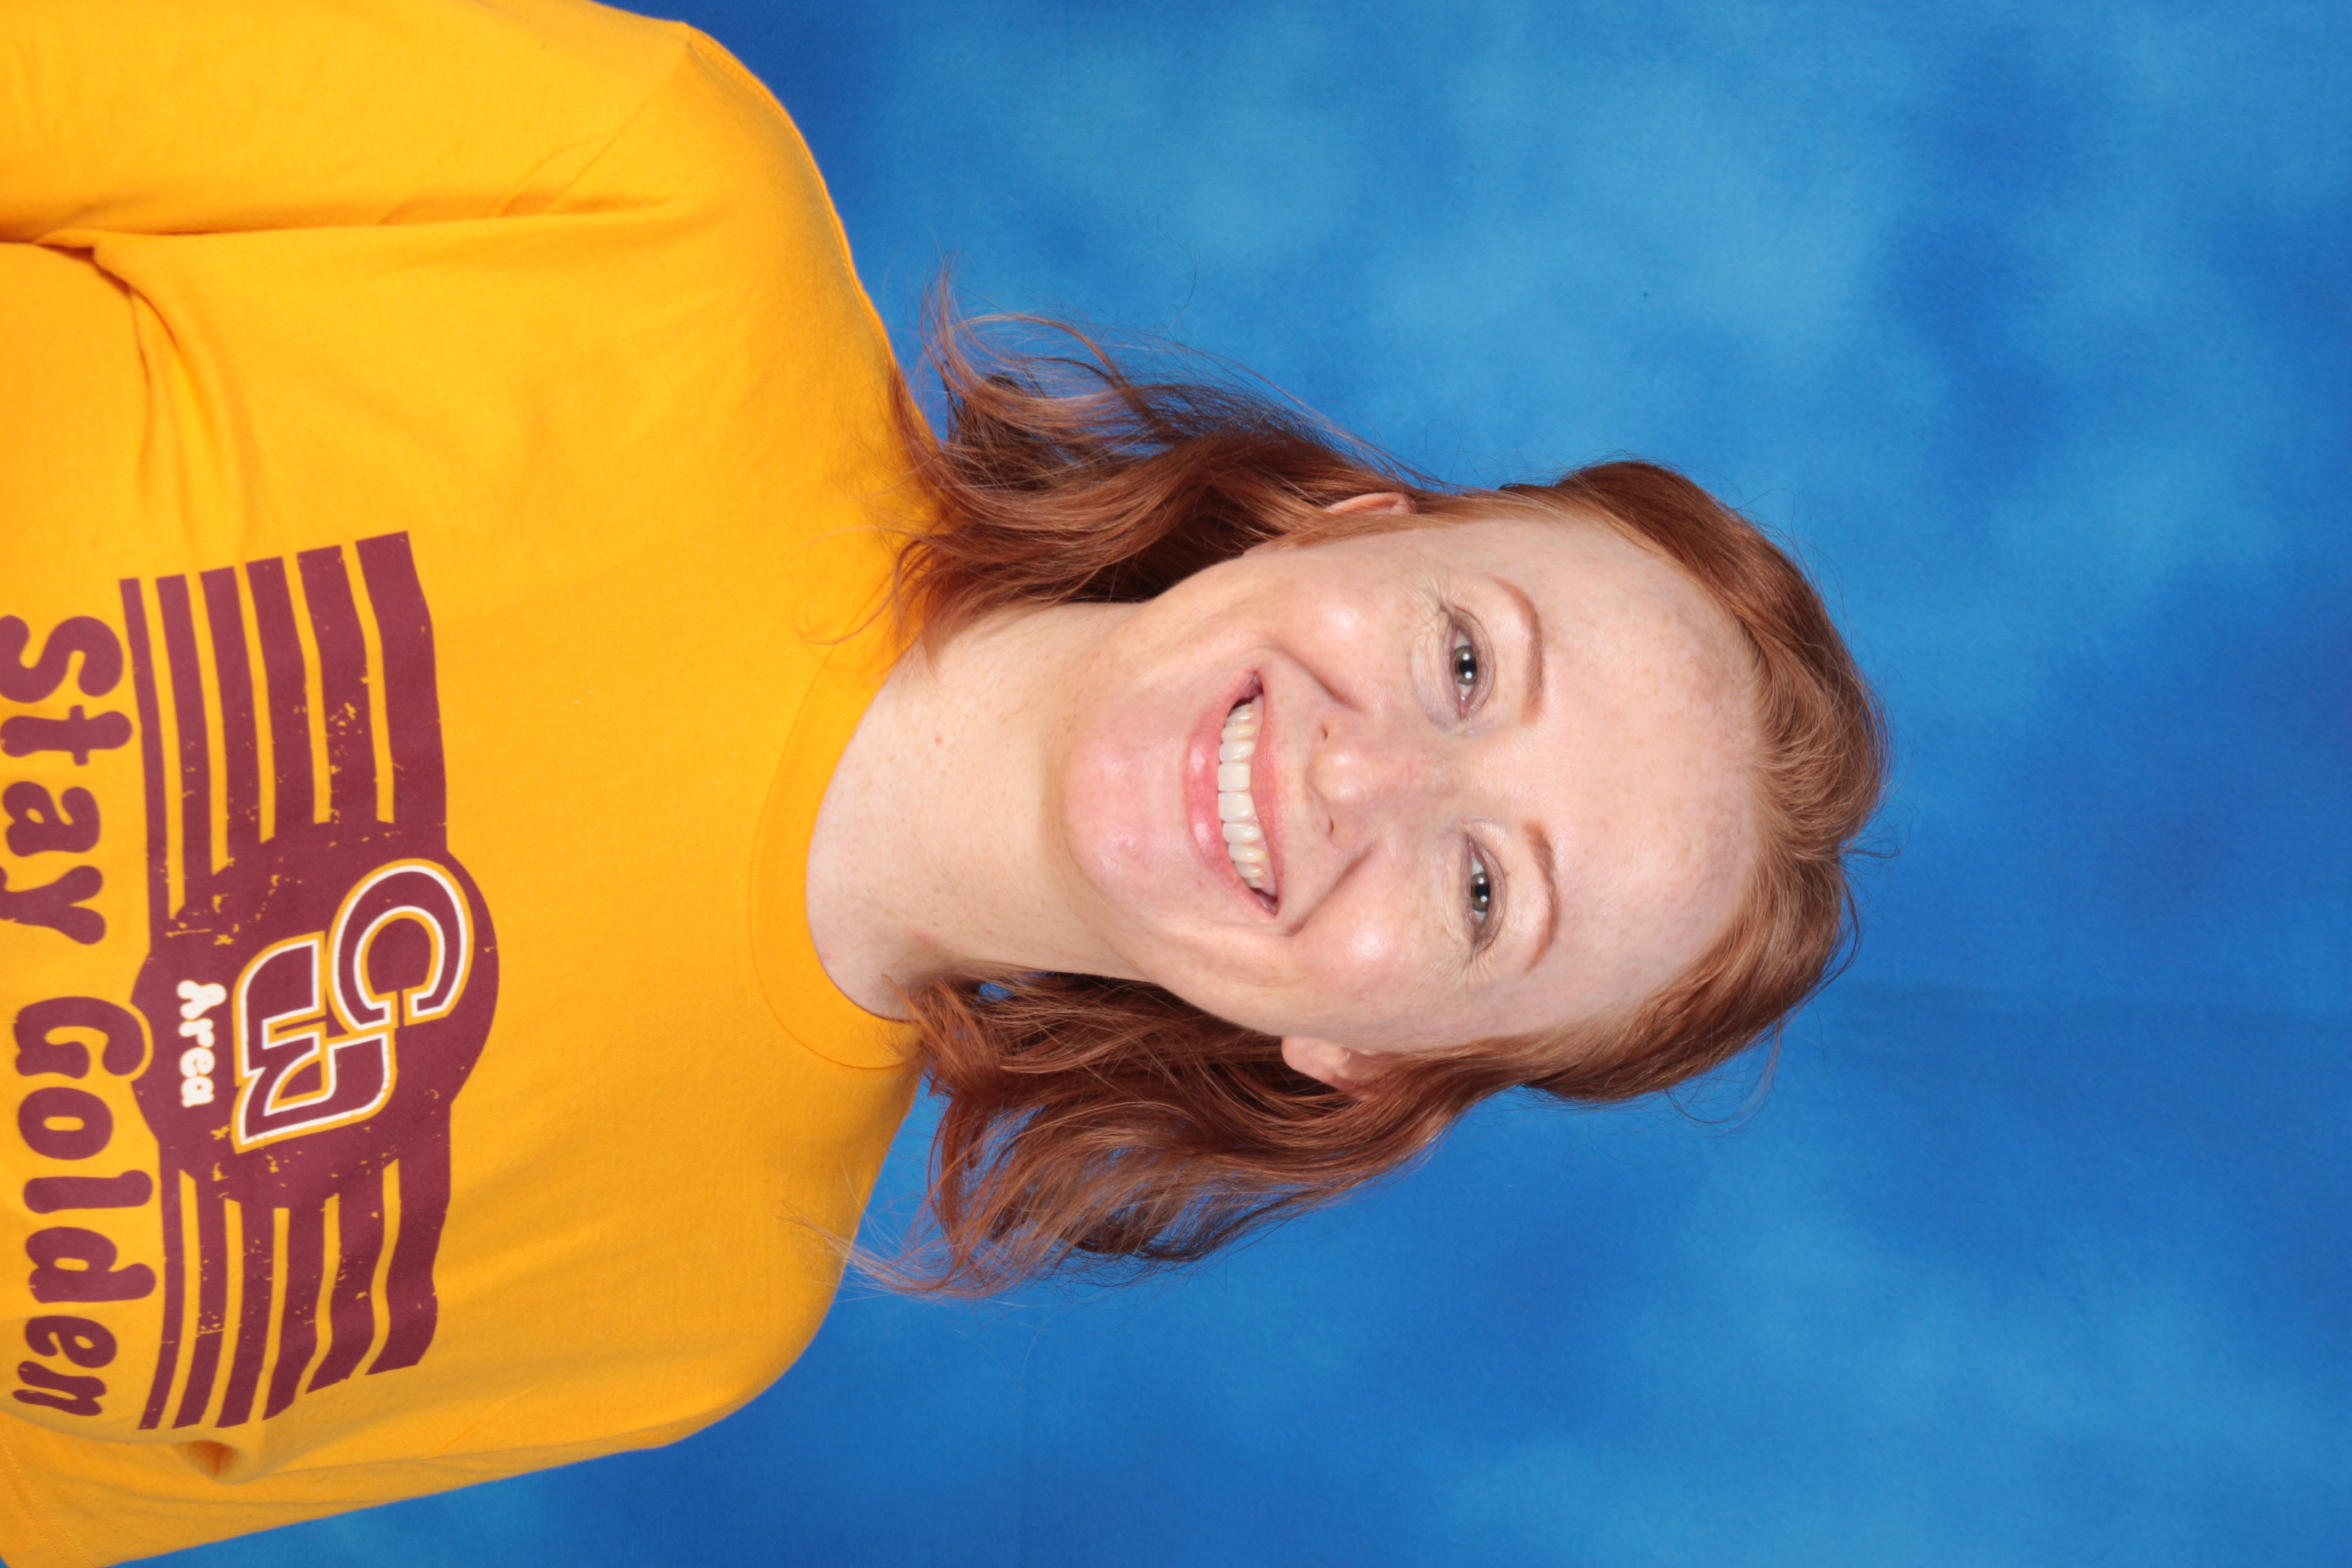 Staff Photo - Keely McGee